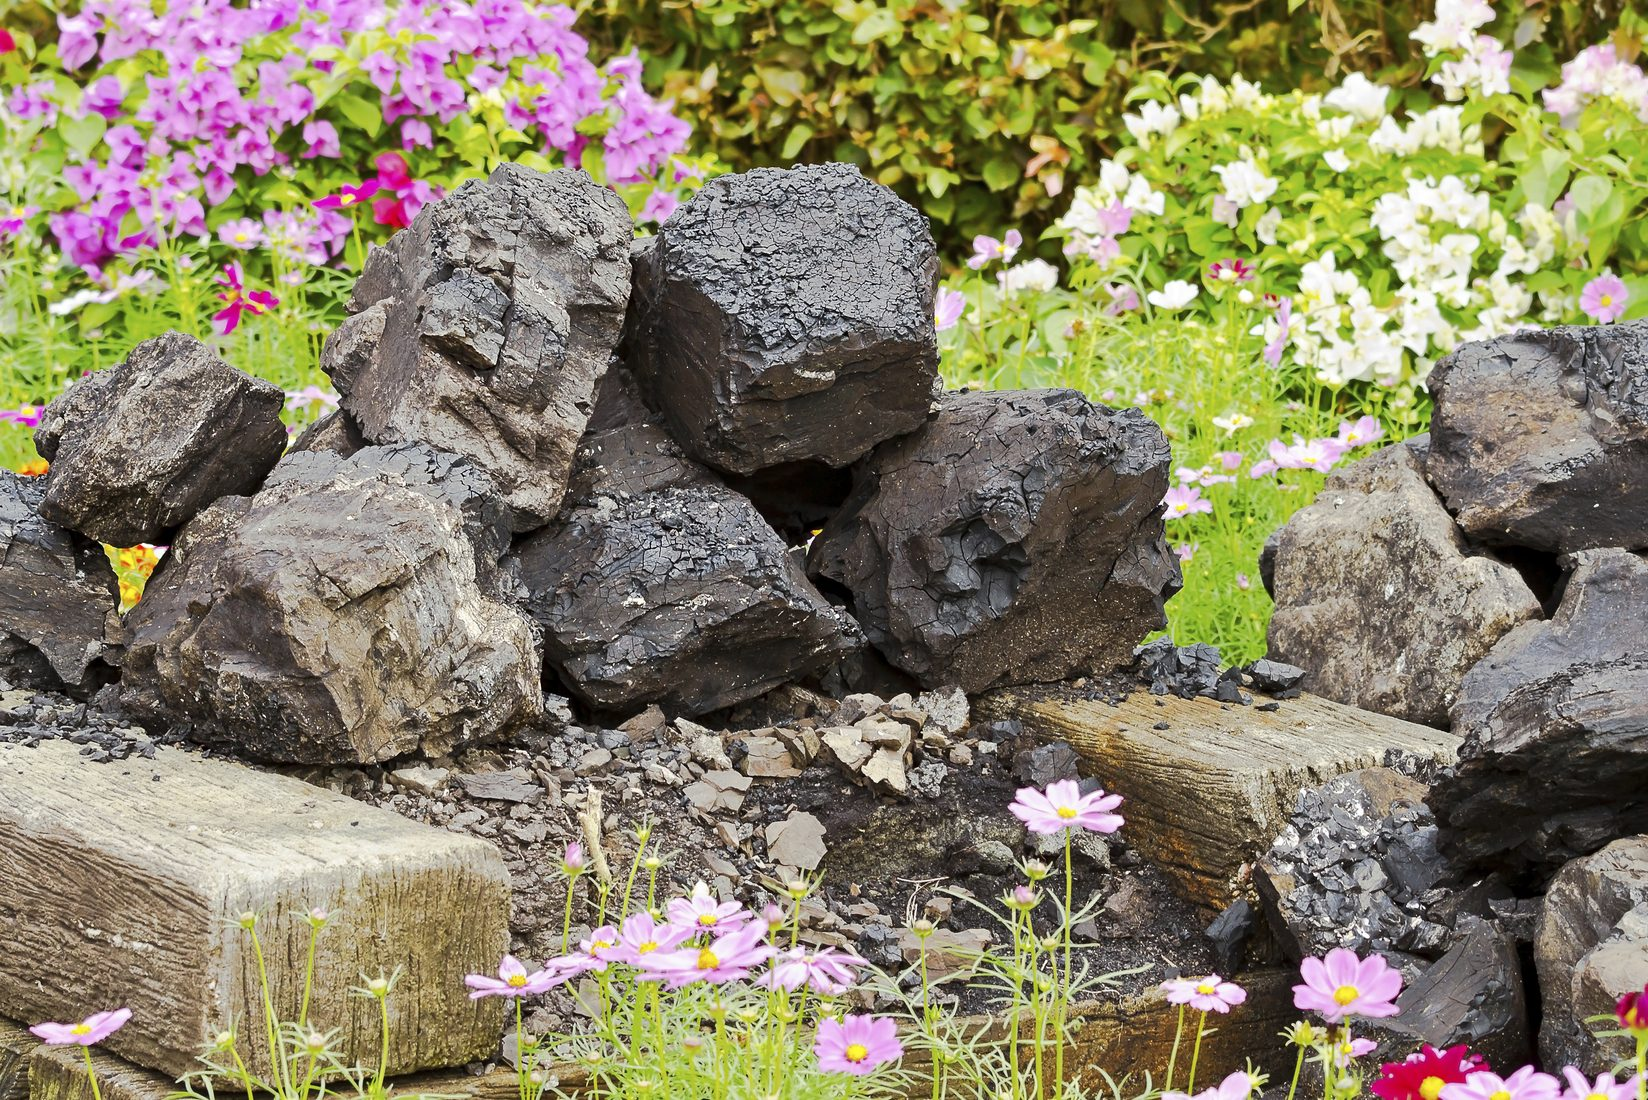 Flowers spring up around a pile of coal. (iStock Photo)